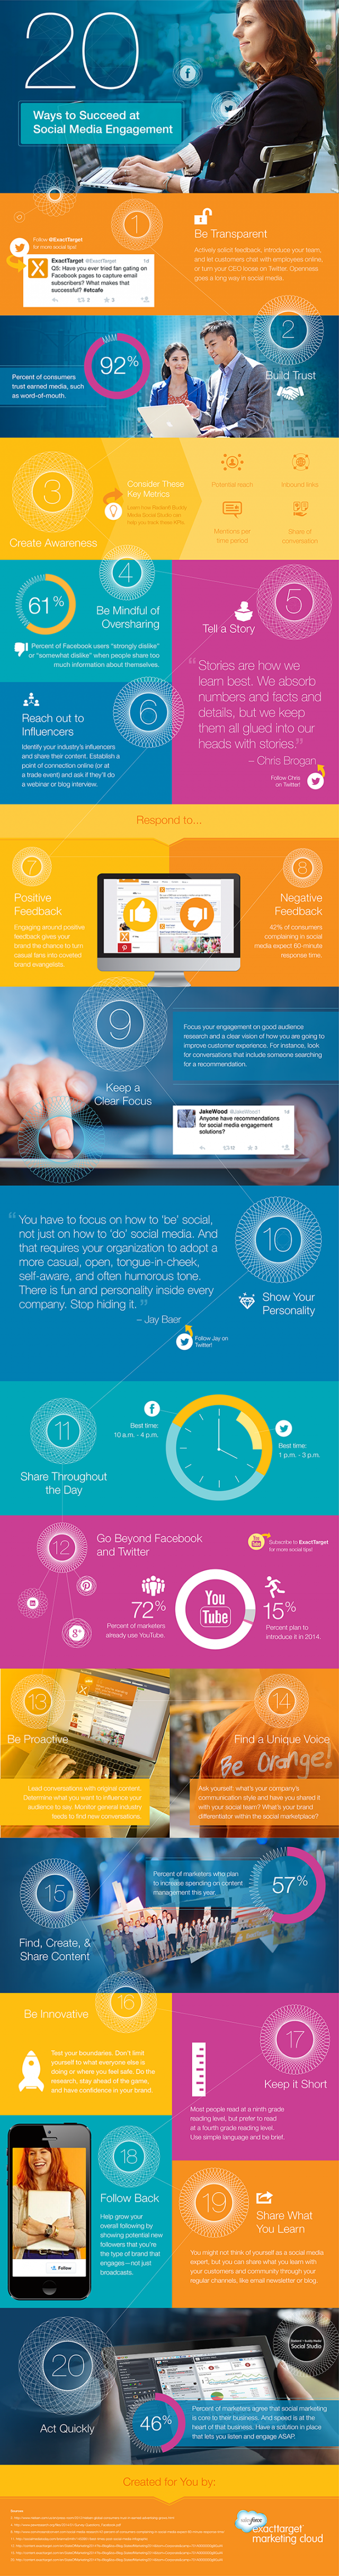 20 Ways to Succeed at Social Media Engagement - #Infographic #marketing #managesocialmedia